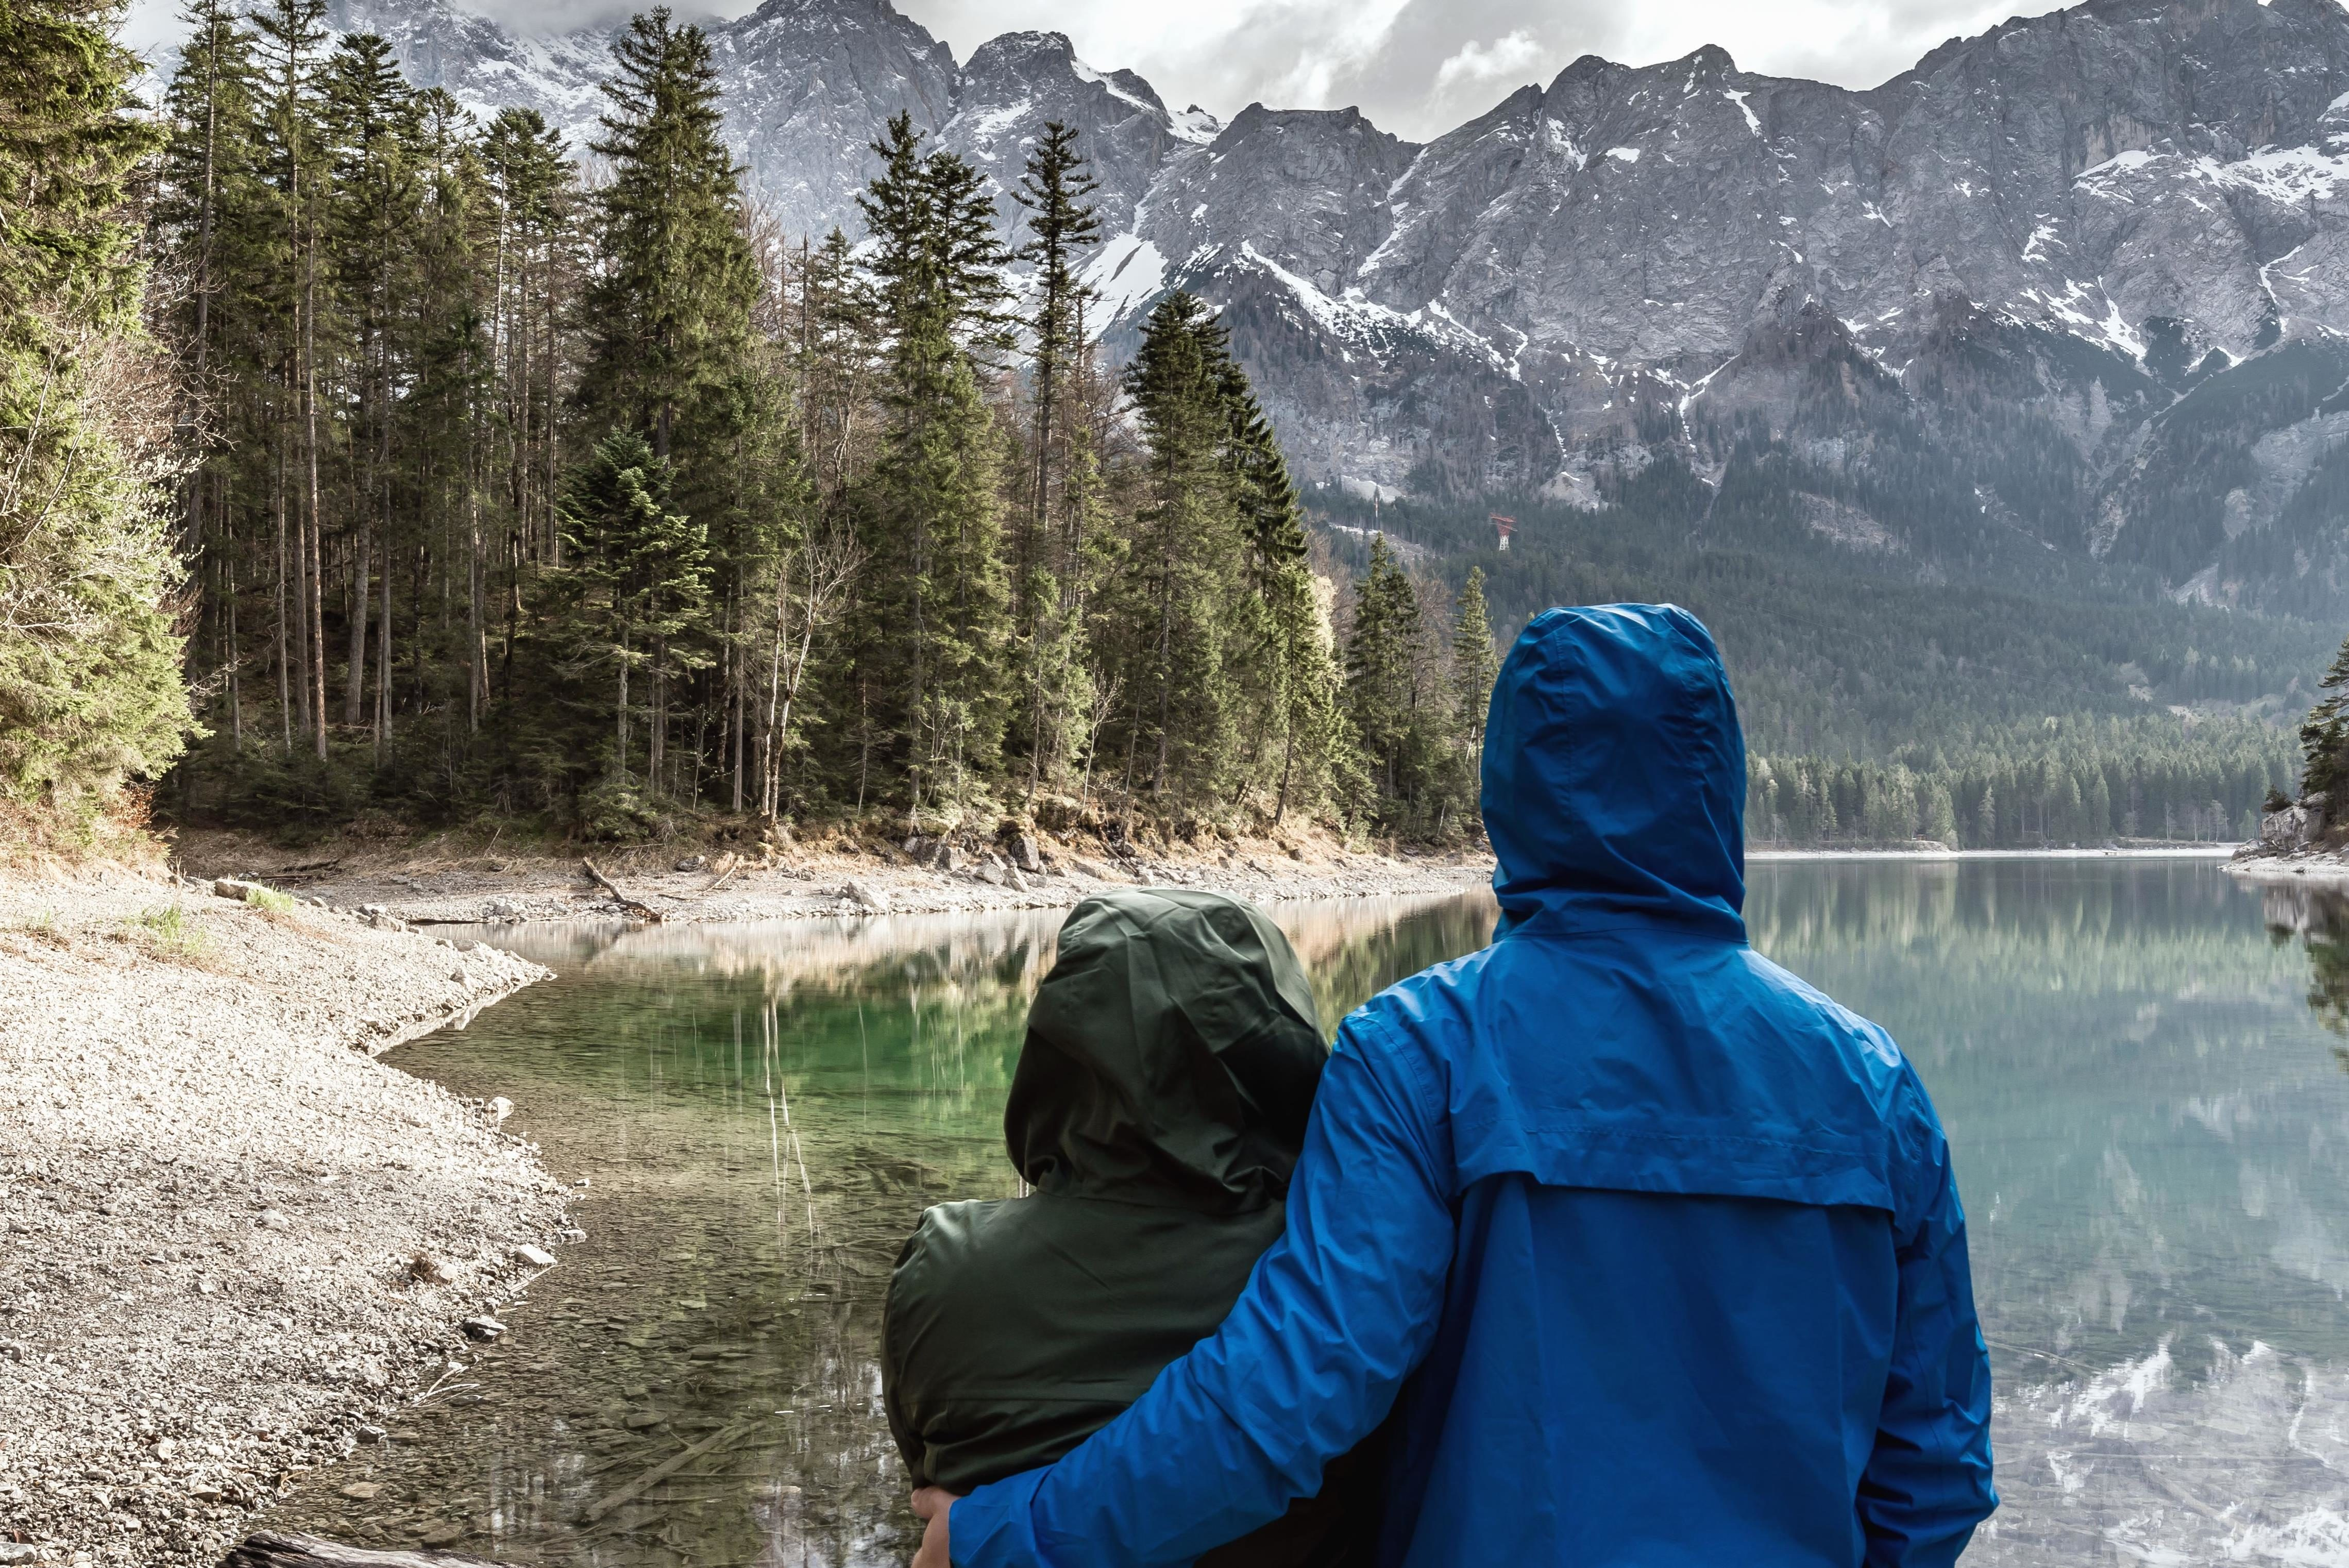 Free Picture Landscape Love Mountain Hug Man Woman